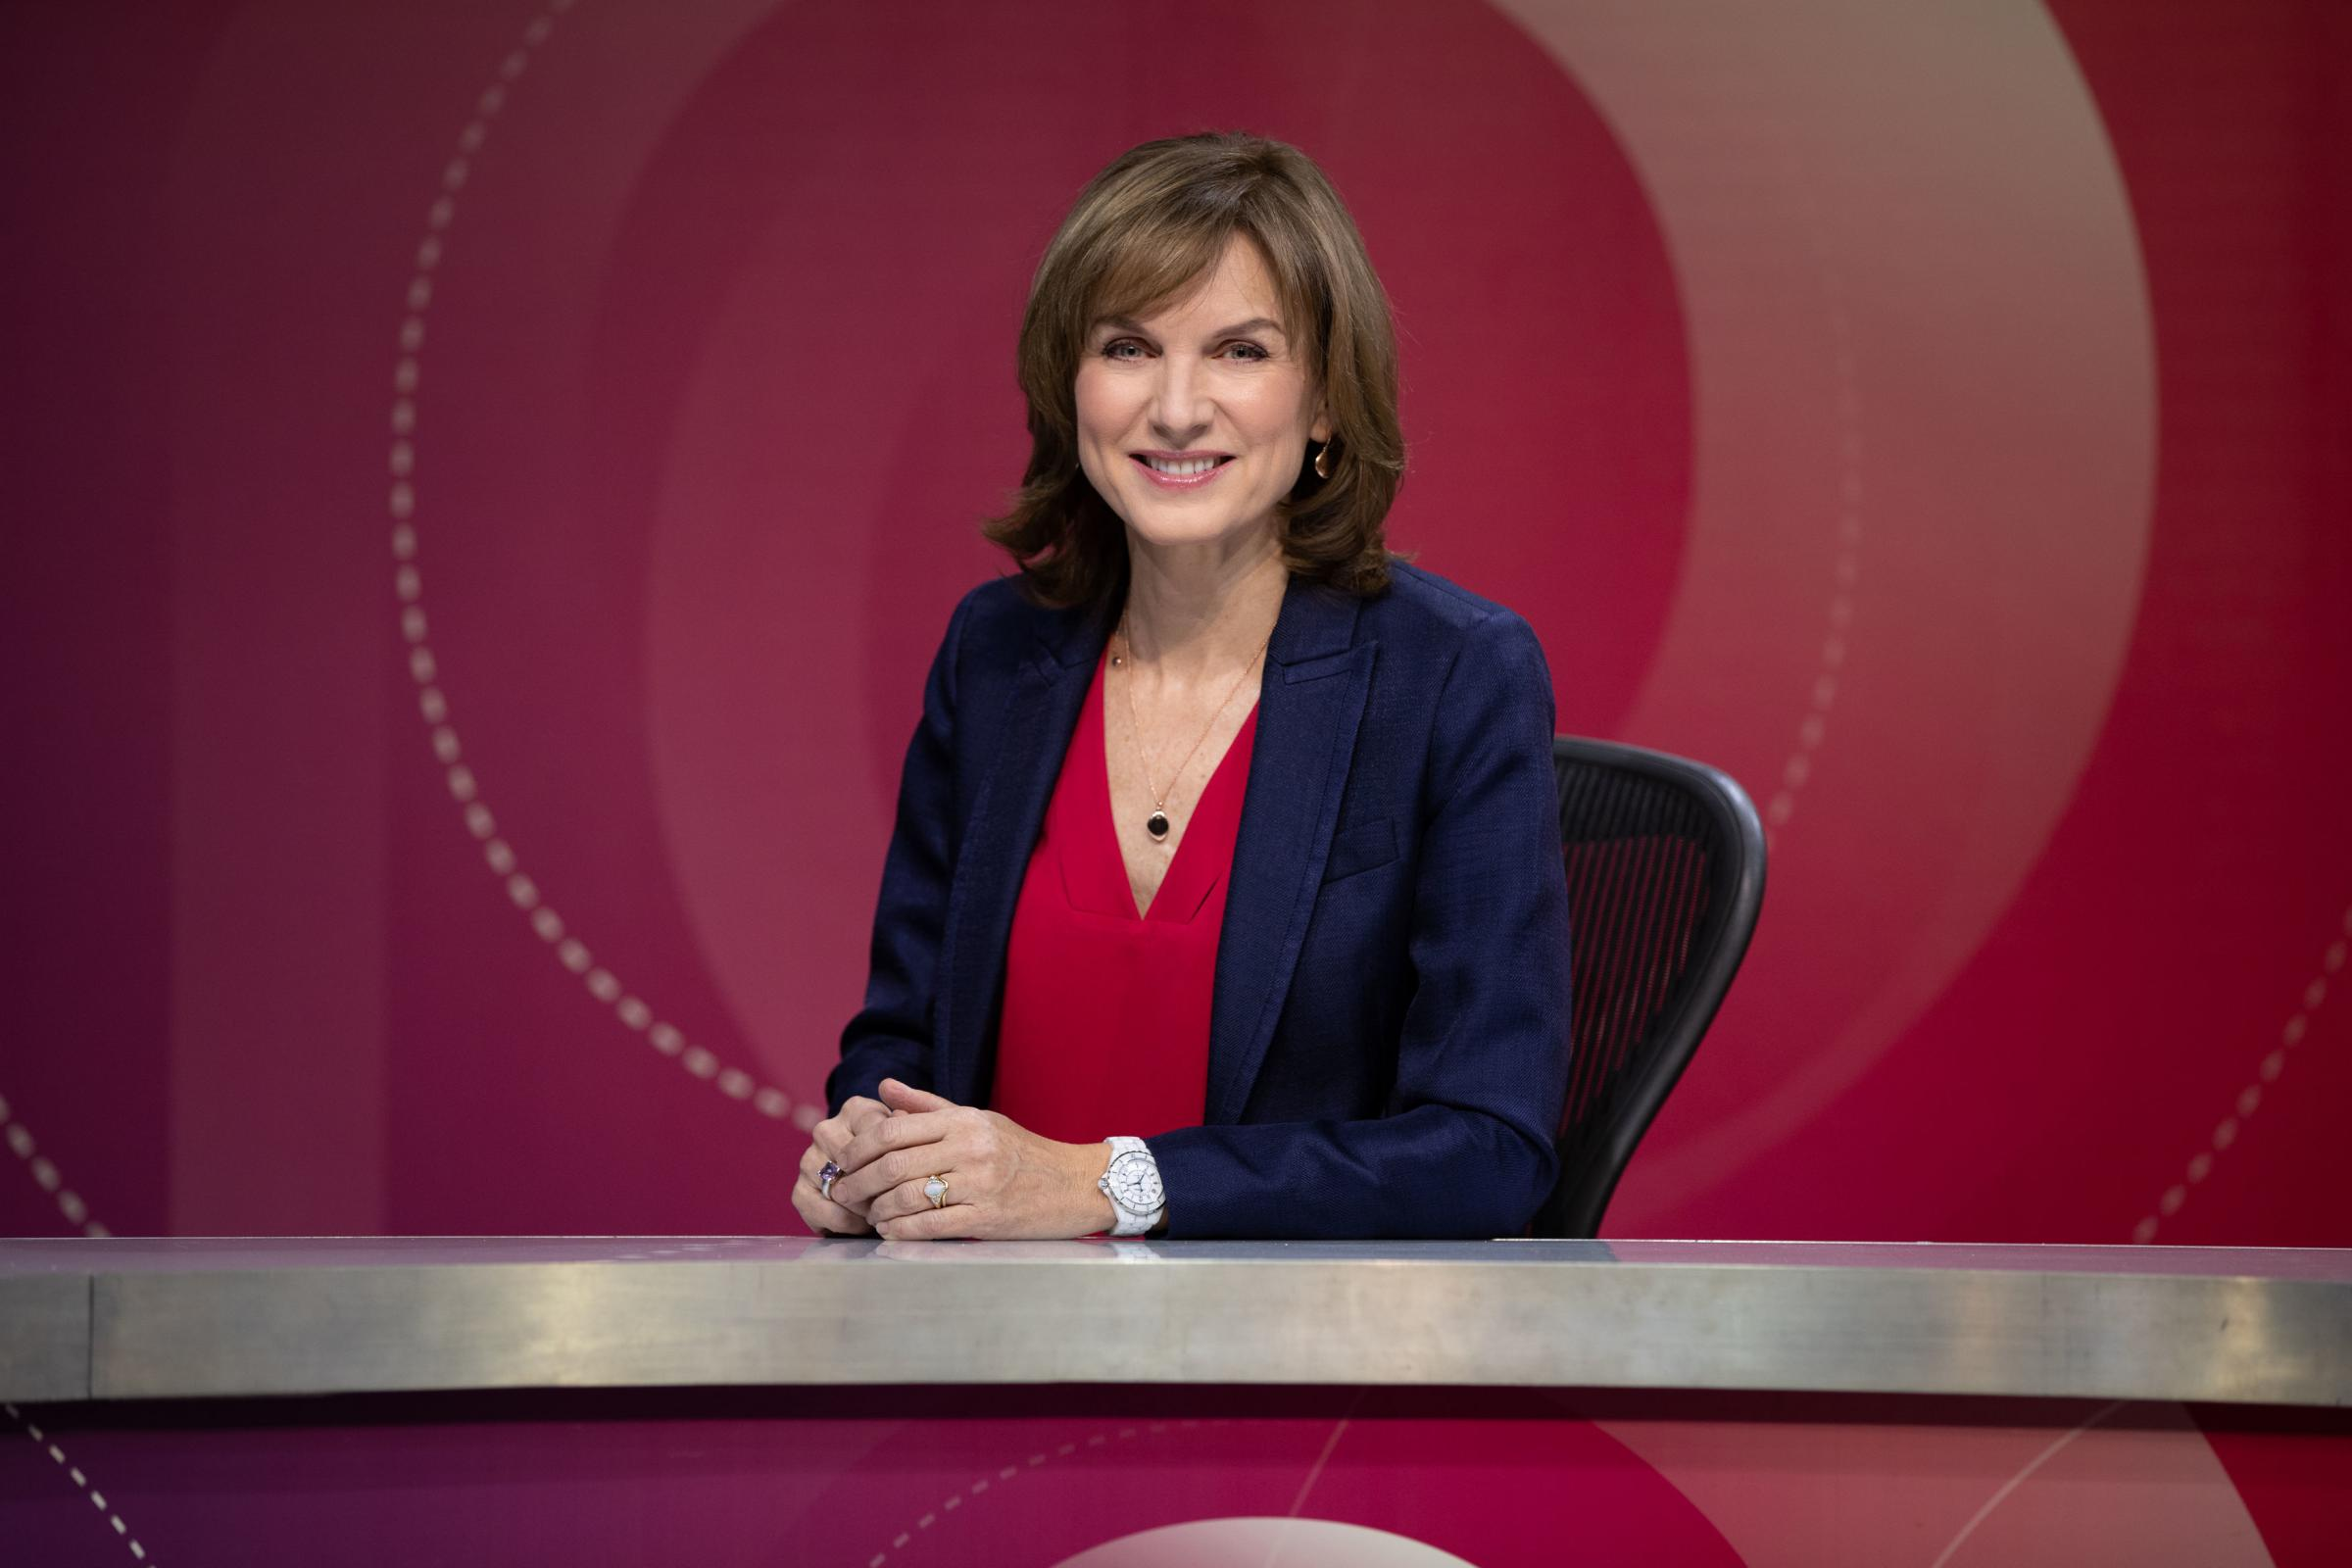 Fiona Bruce, who now chairs Question Time